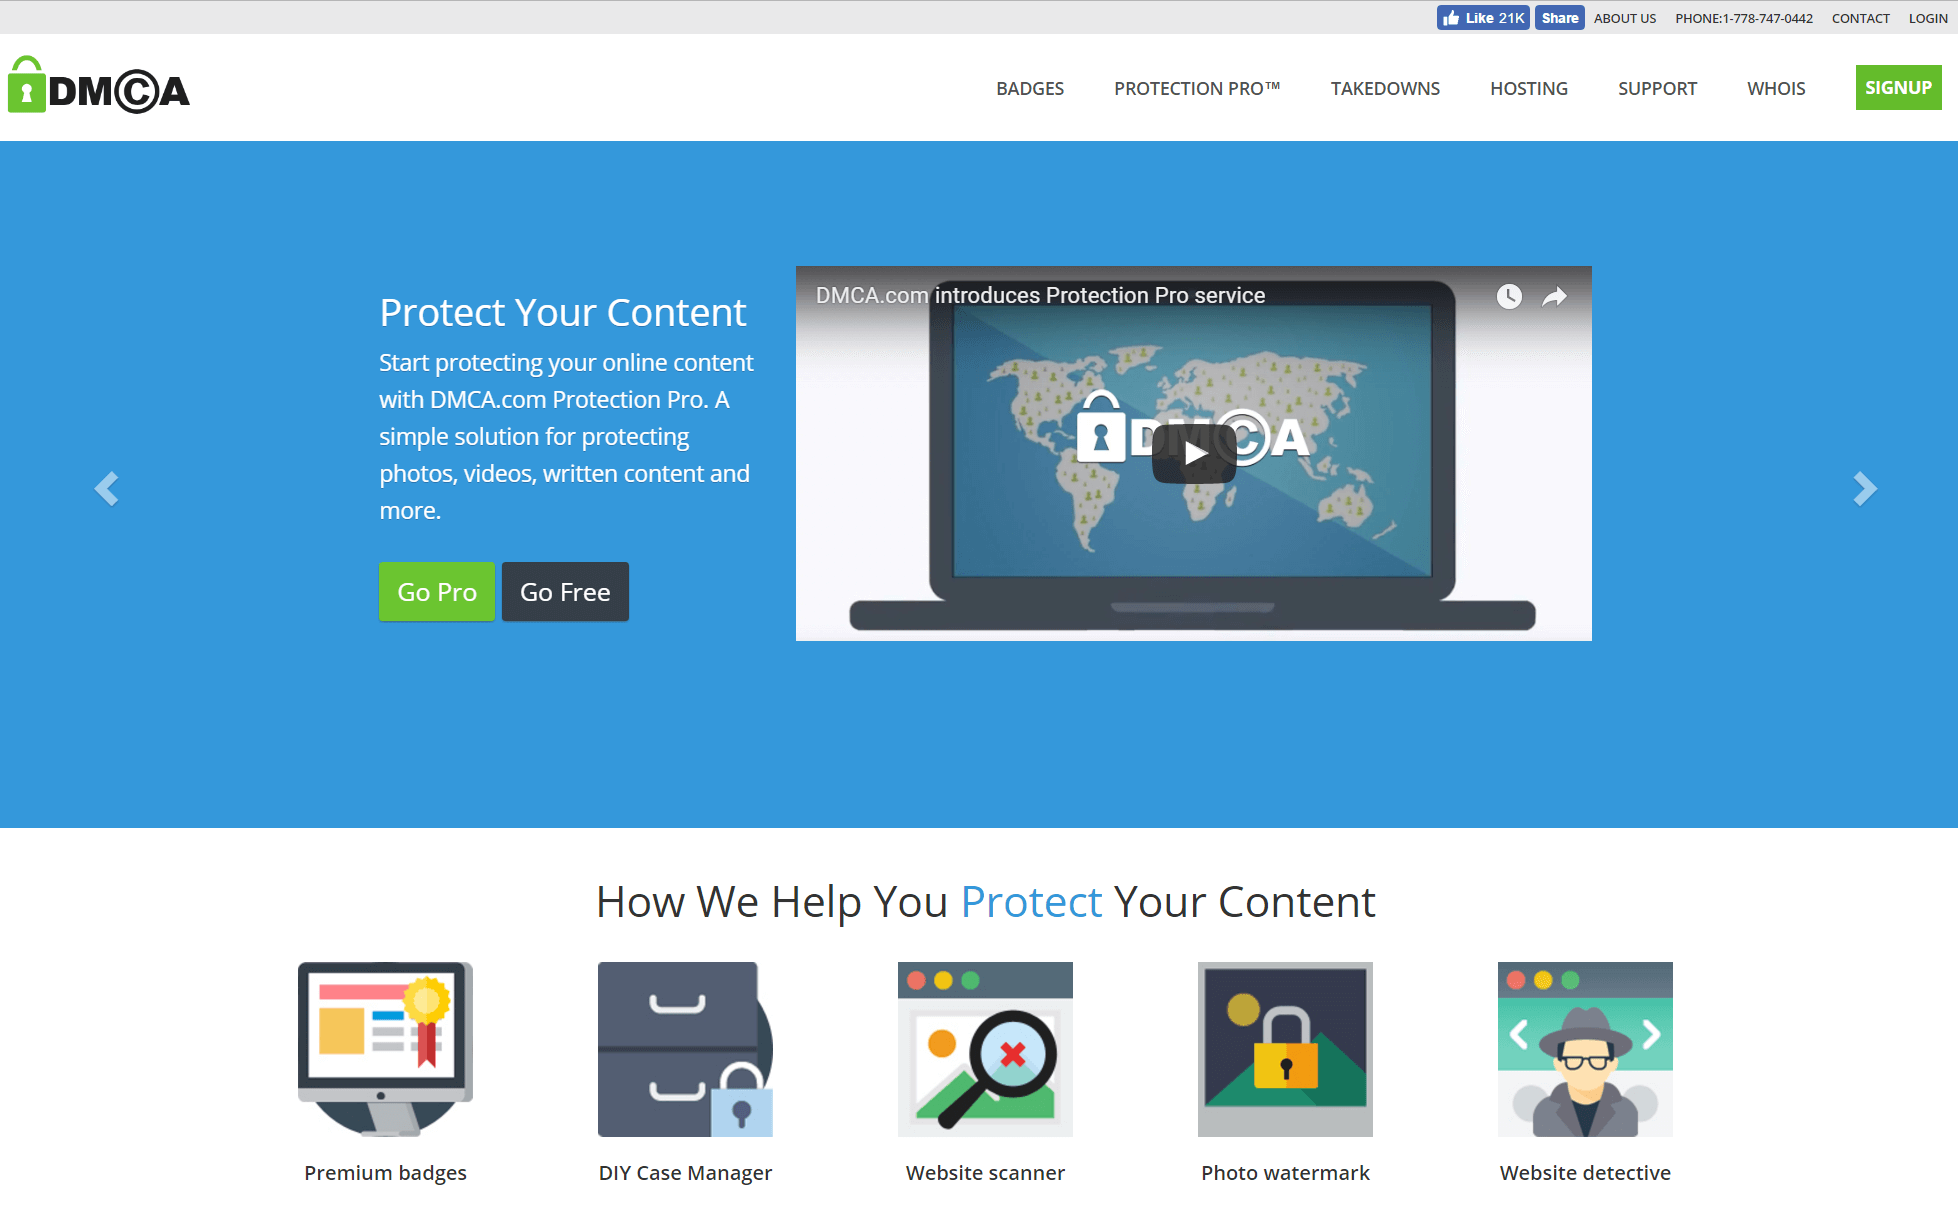 Dmca: DMCA Website Protection Pro™